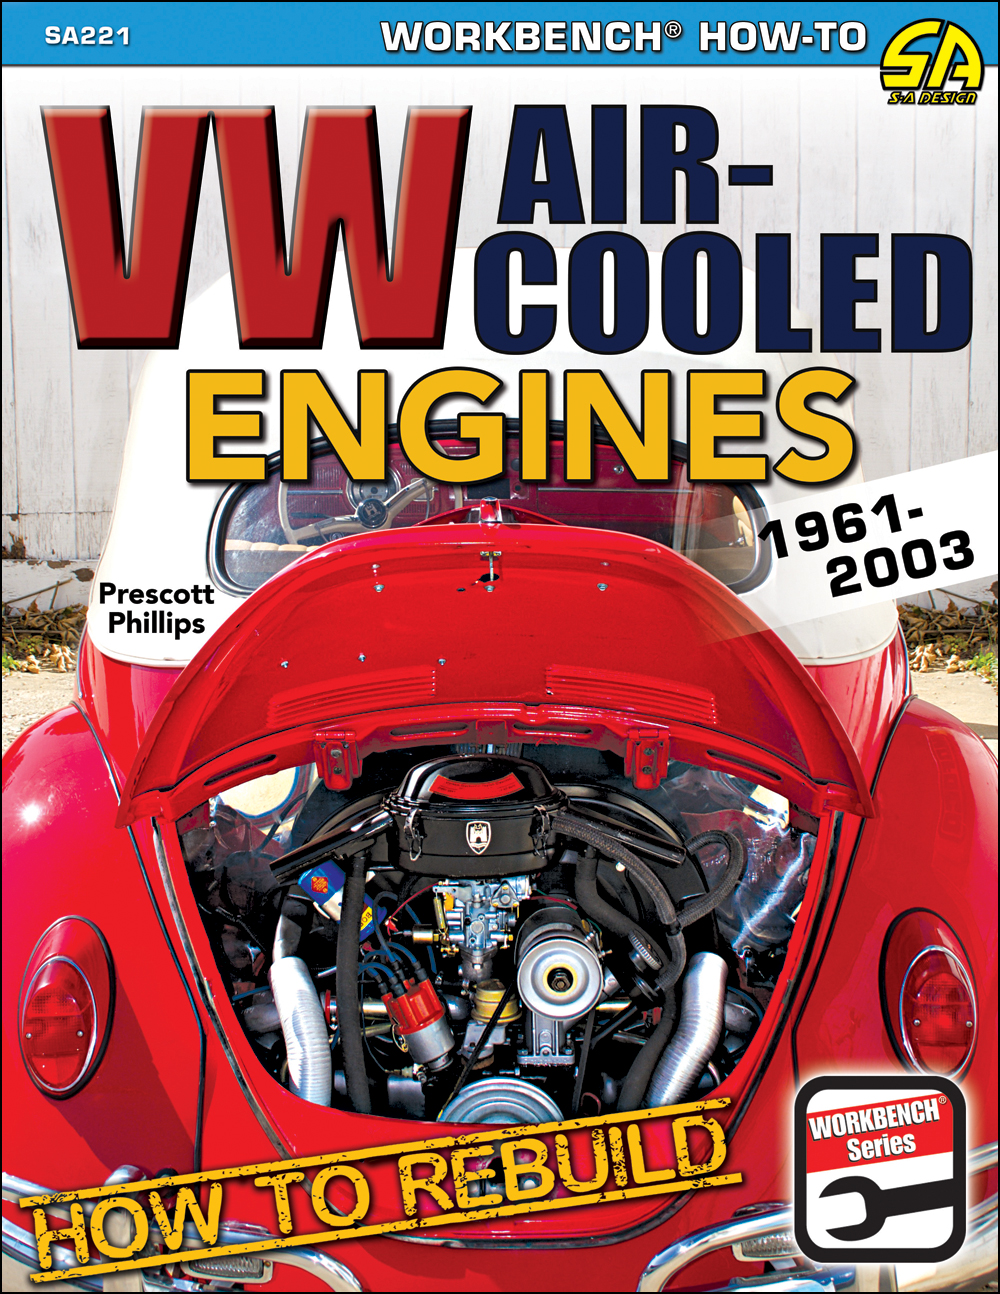 1961-2003 How to Rebuild VW Air-Cooled Engines Type 1, 2, and 3 Volkswagen